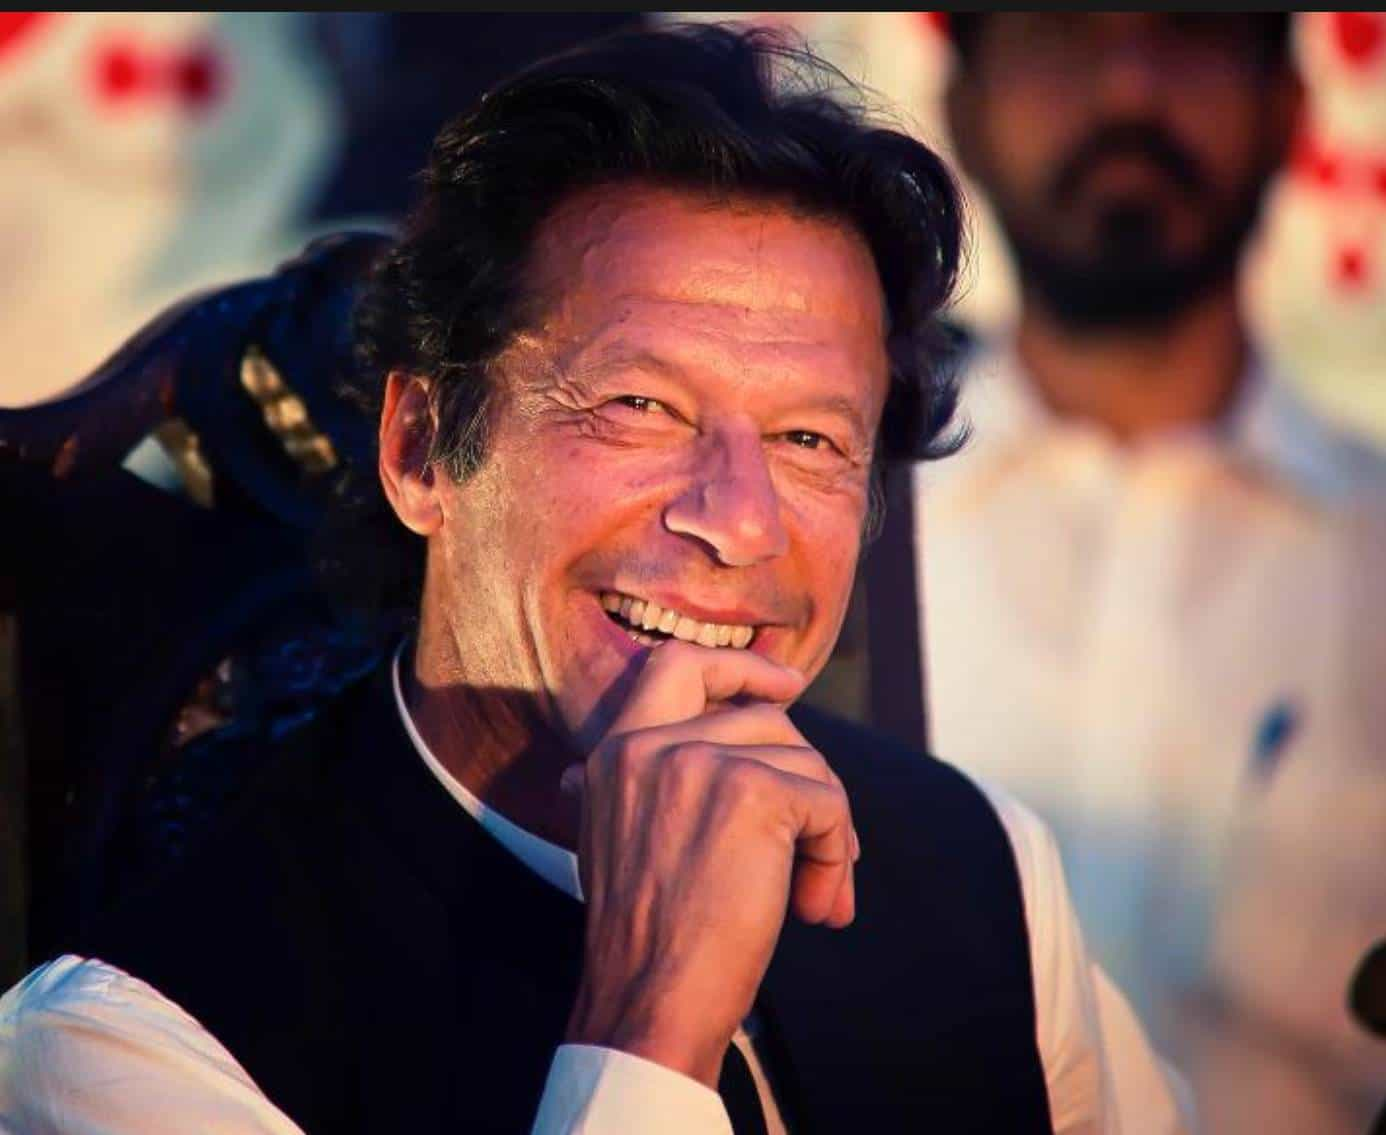 Imran Khan warns India out of concern and said many more attack like Pulwama can happenImran Khan warns India out of concern and said many more attack like Pulwama can happen